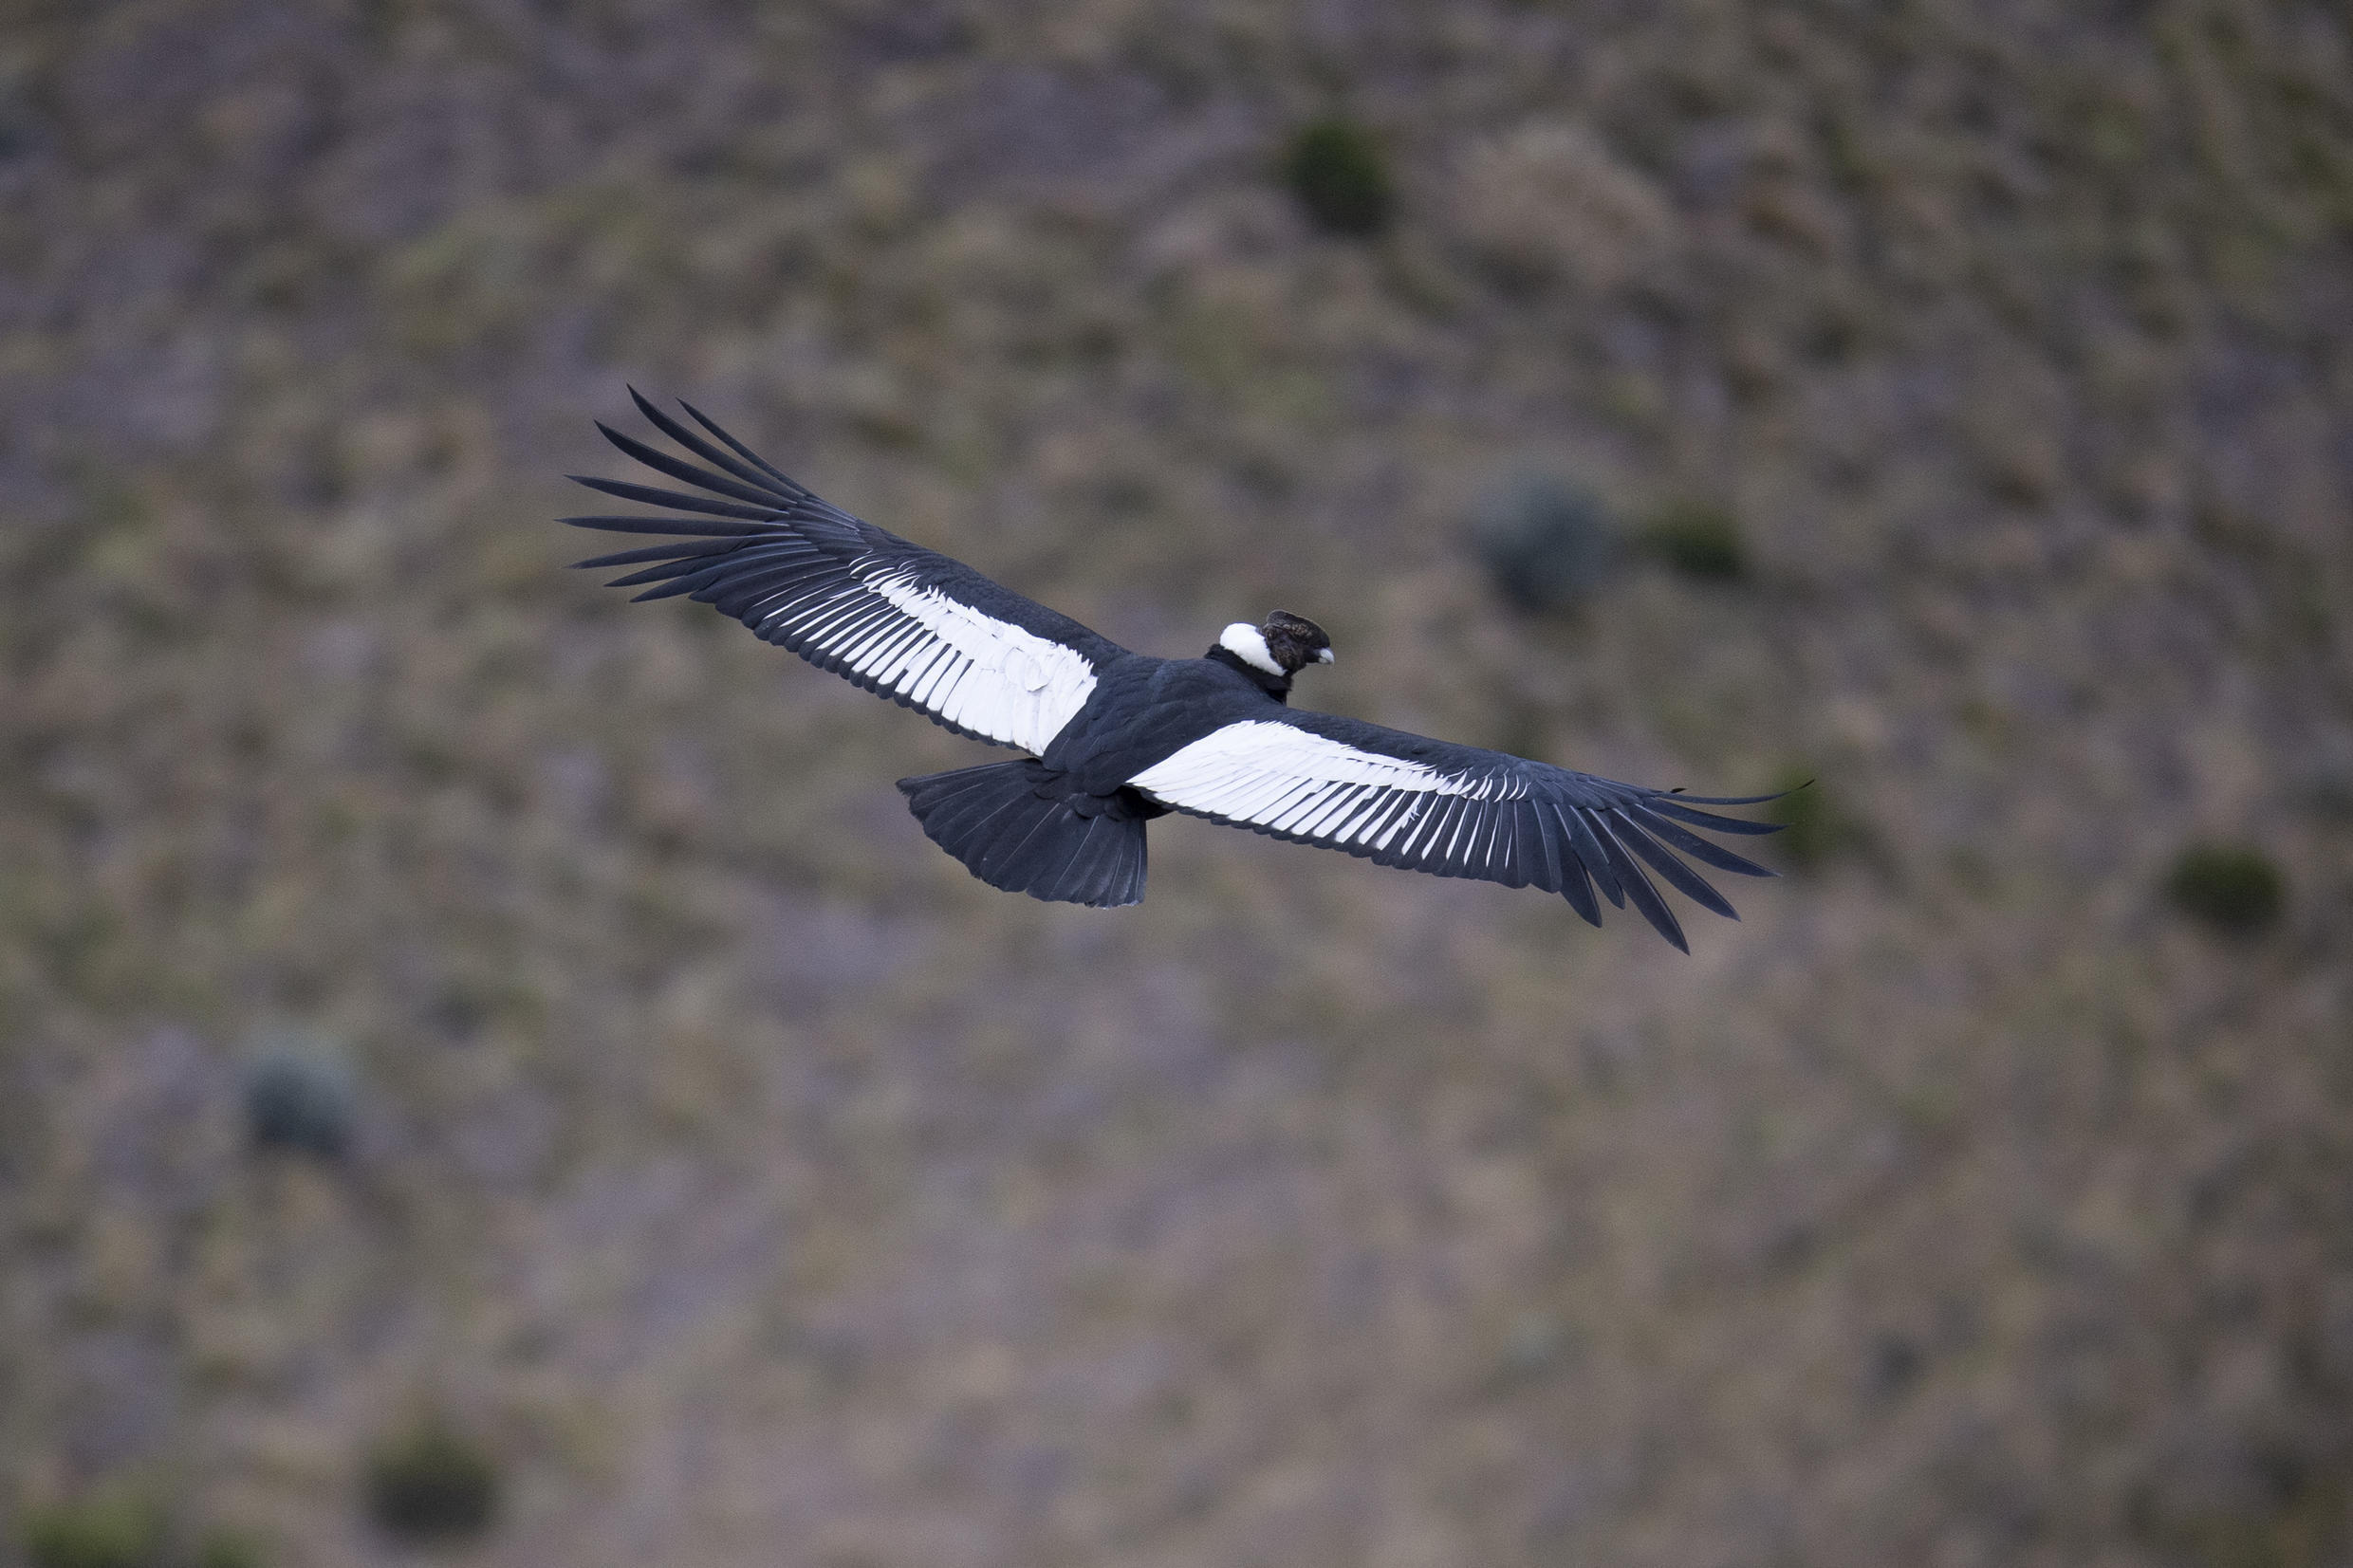 A male Andean condor flies over the Chakana nature reserve in September 2020.